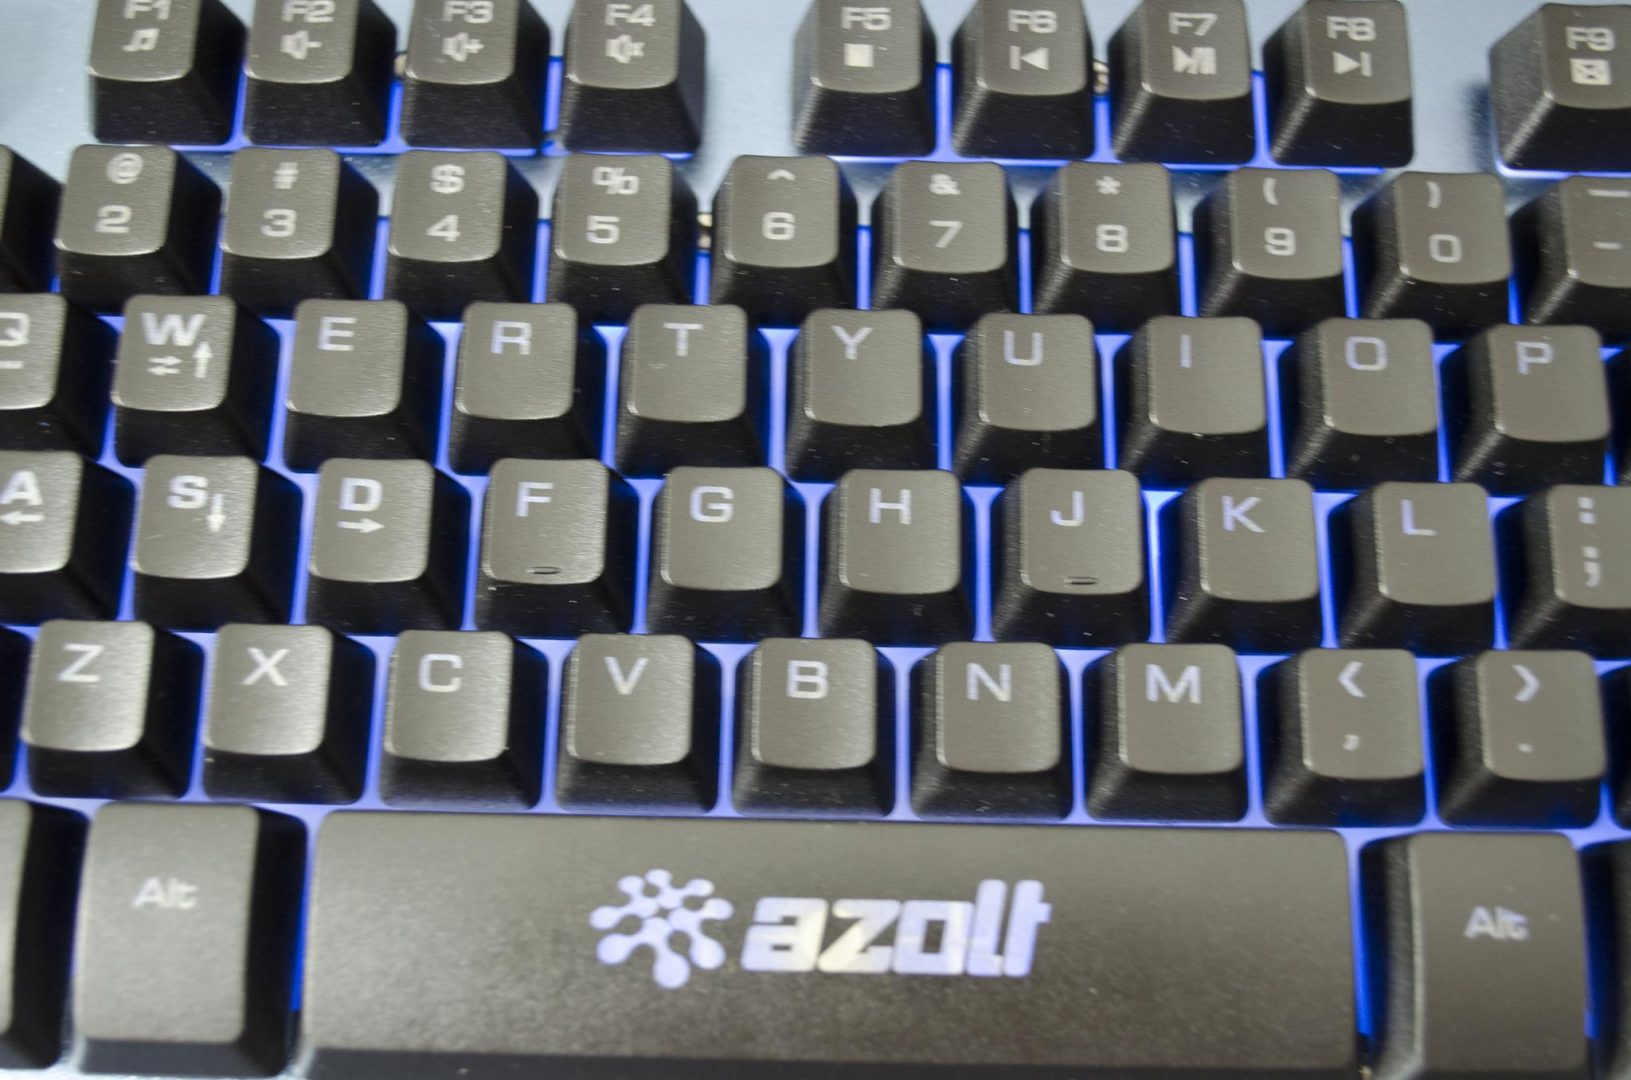 Azolt gCrusayder keyboard review_11